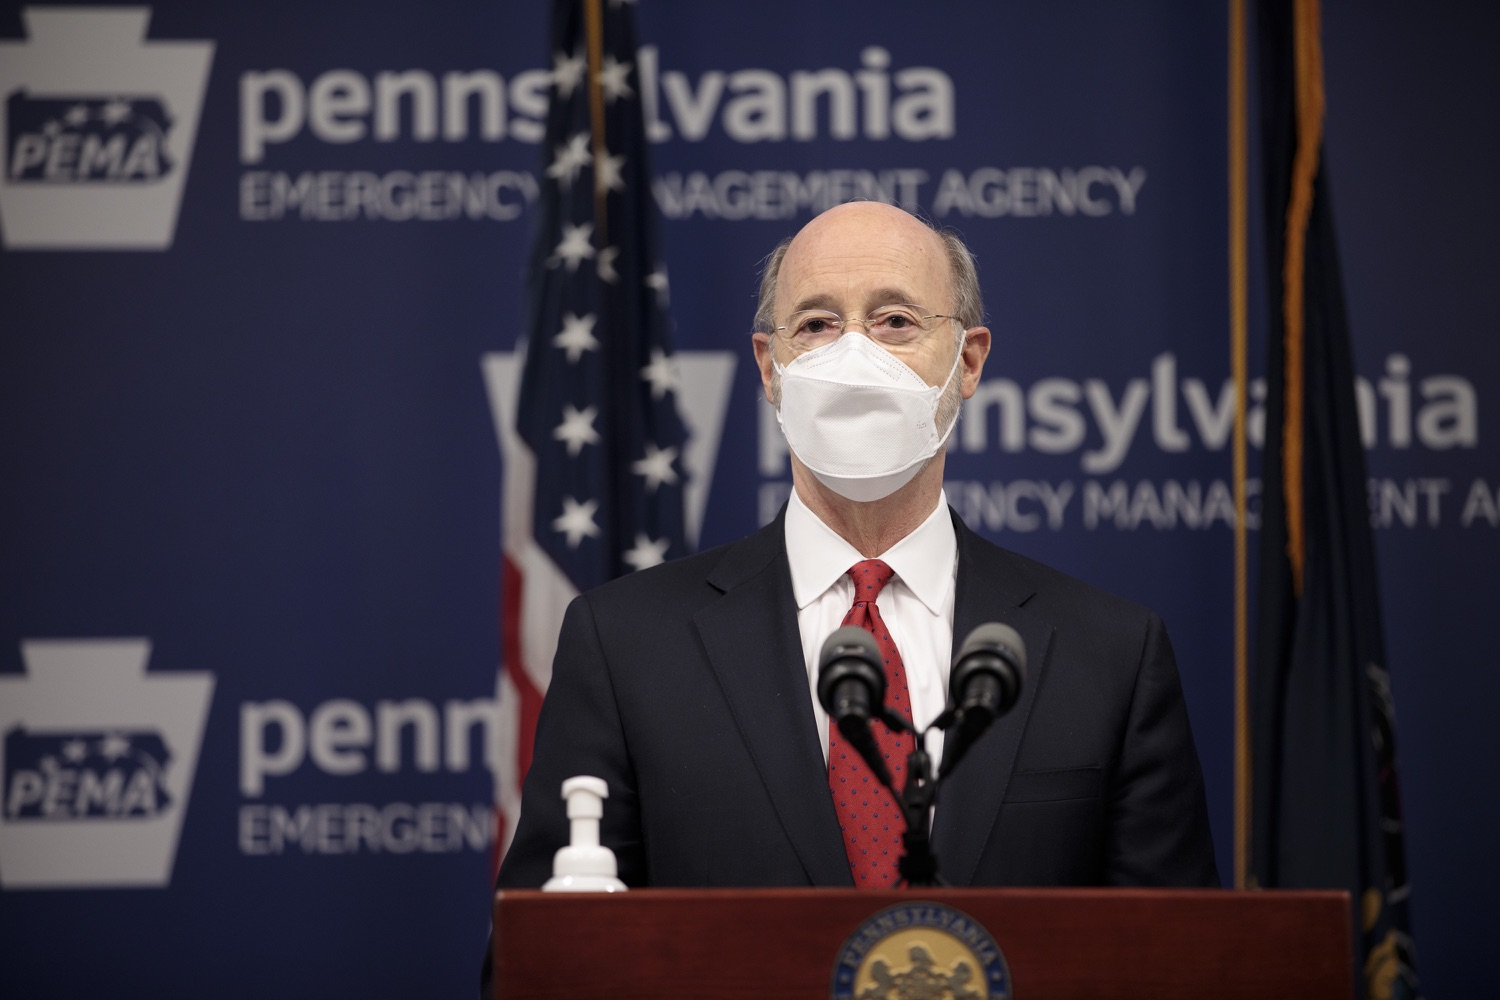 "<a href=""https://filesource.wostreaming.net/commonwealthofpa/photo/18540_gov_backtowork_dz_11.jpg"" target=""_blank"">⇣ Download Photo<br></a>Pennsylvania Governor Tom Wolf speaking at the press conference. The COVID-19 global pandemic has significantly affected Pennsylvania workers, businesses and communities. To bolster economic recovery efforts and position Pennsylvania for economic growth, Governor Tom Wolf today unveiled his Back to Work PA plan.   Harrisburg, PA  February 22, 2021"